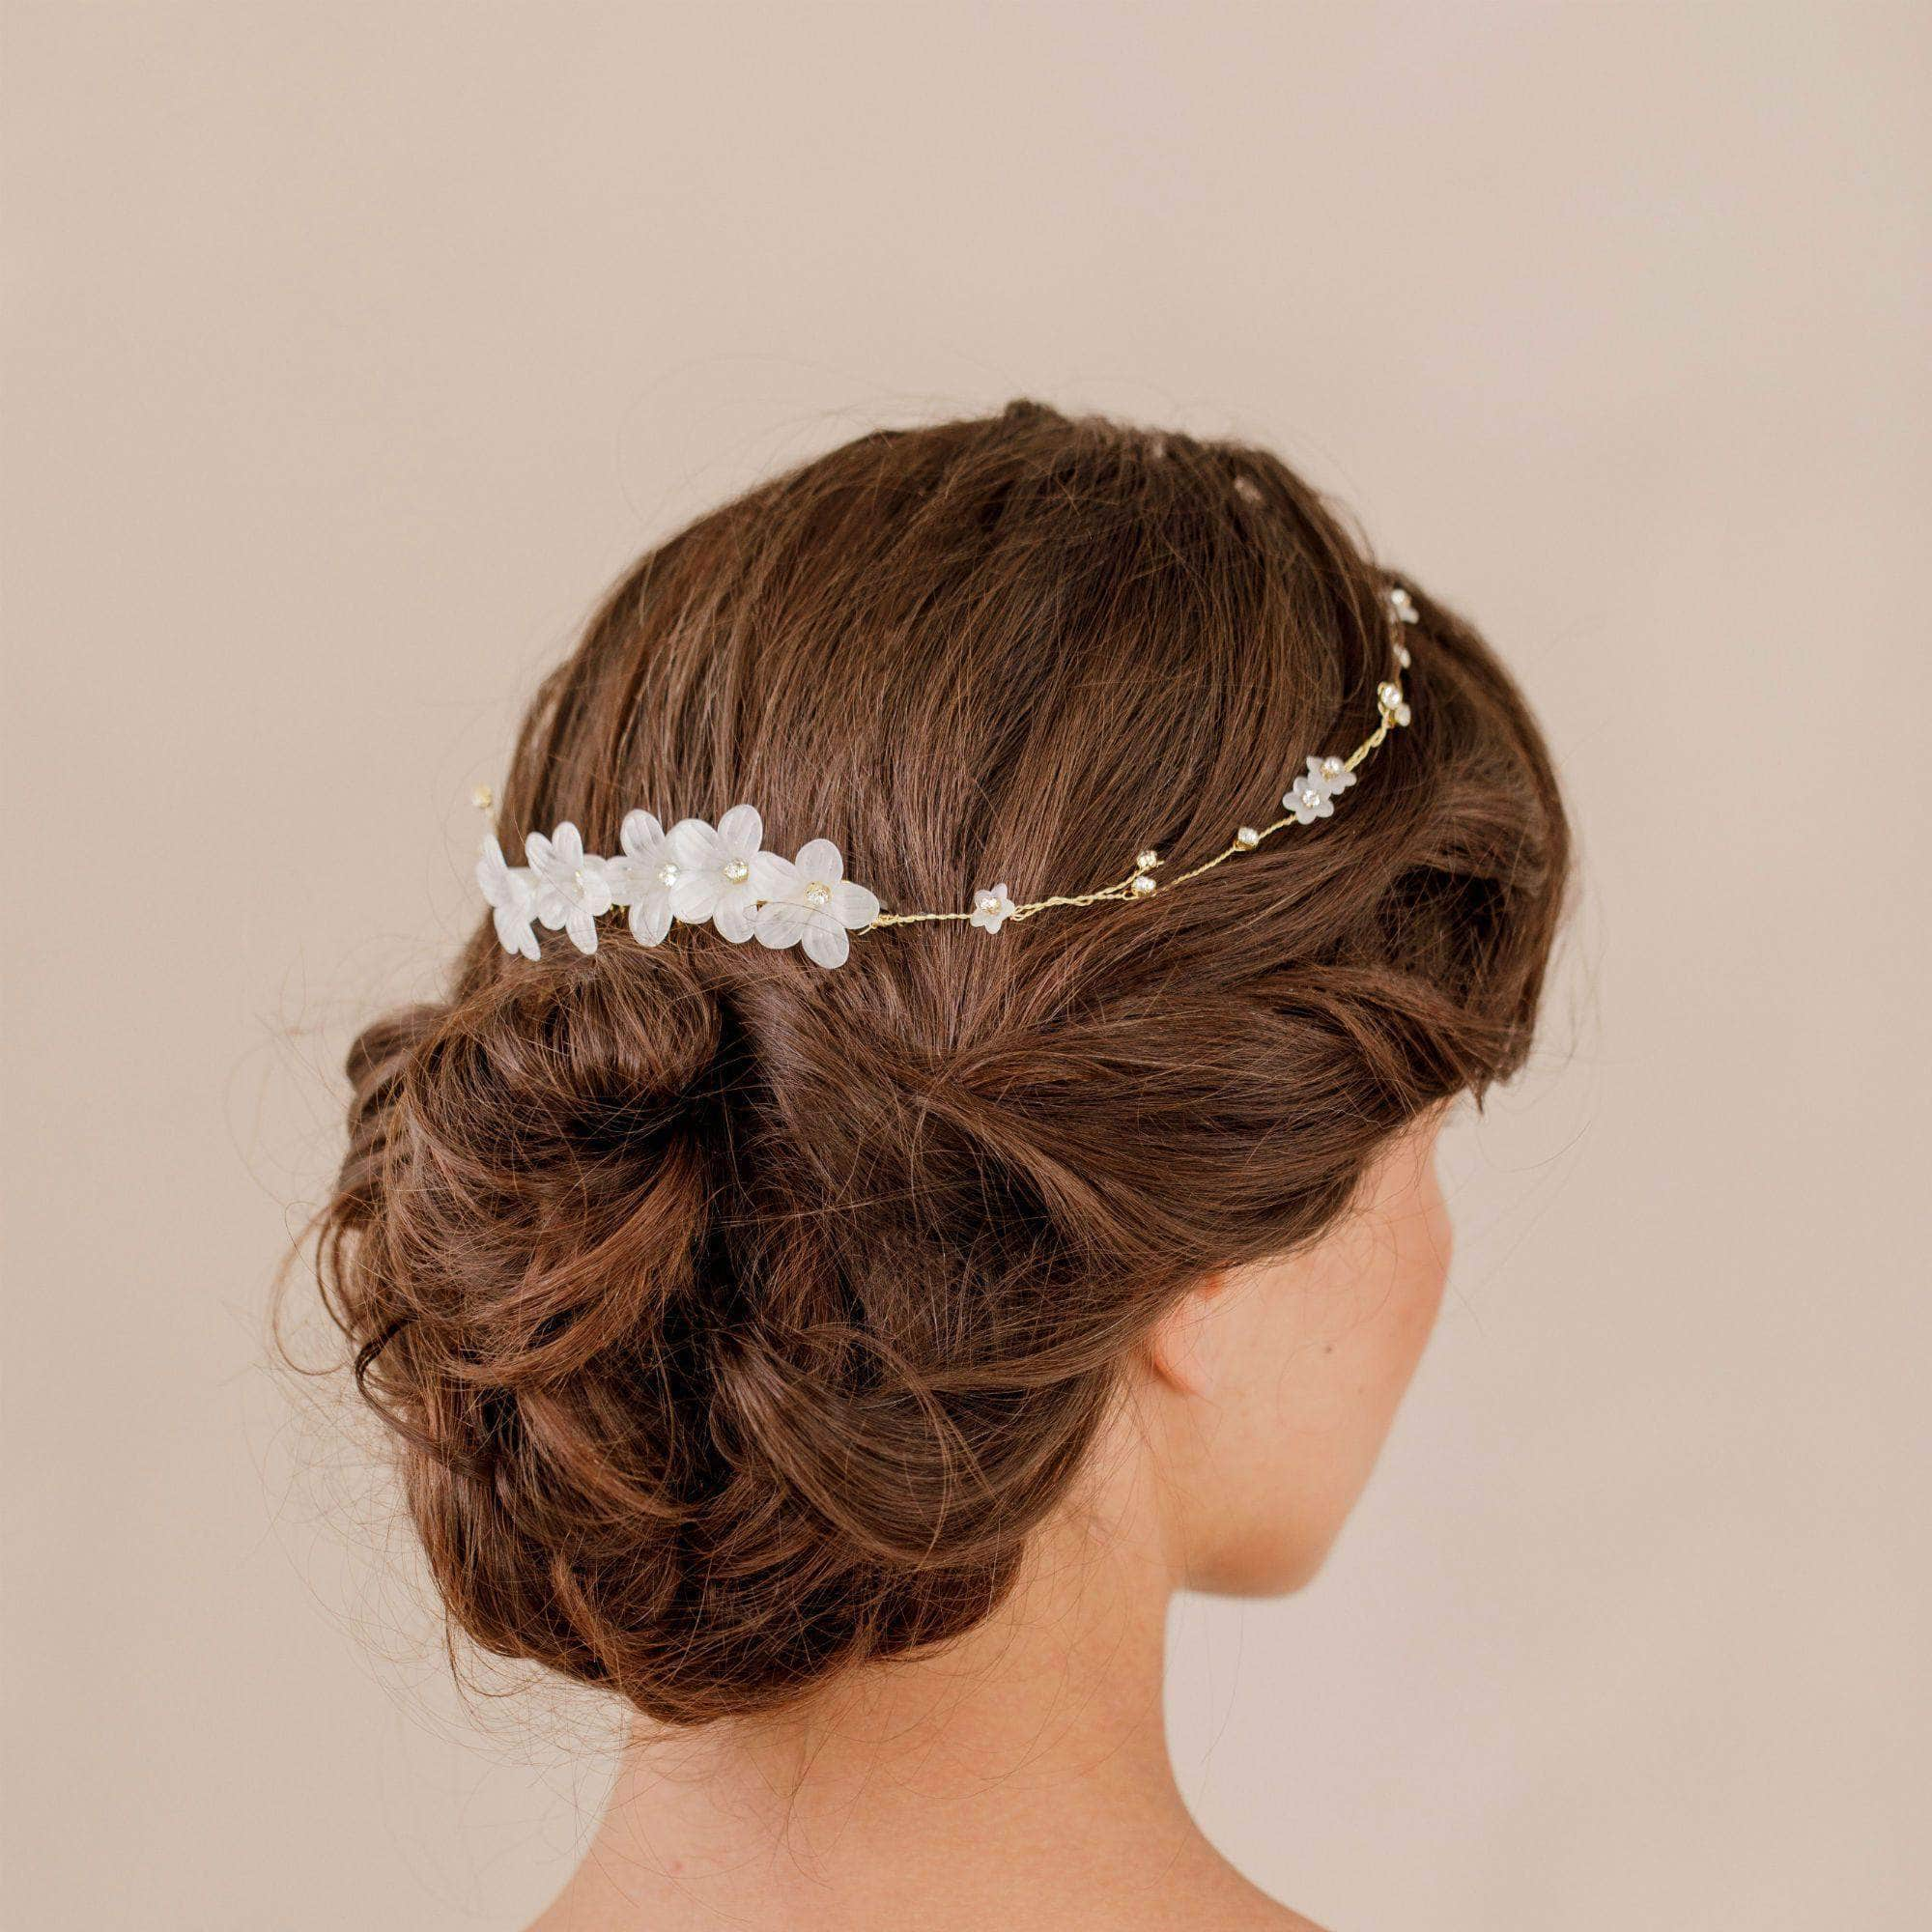 Delicate flower and crystal hair piece